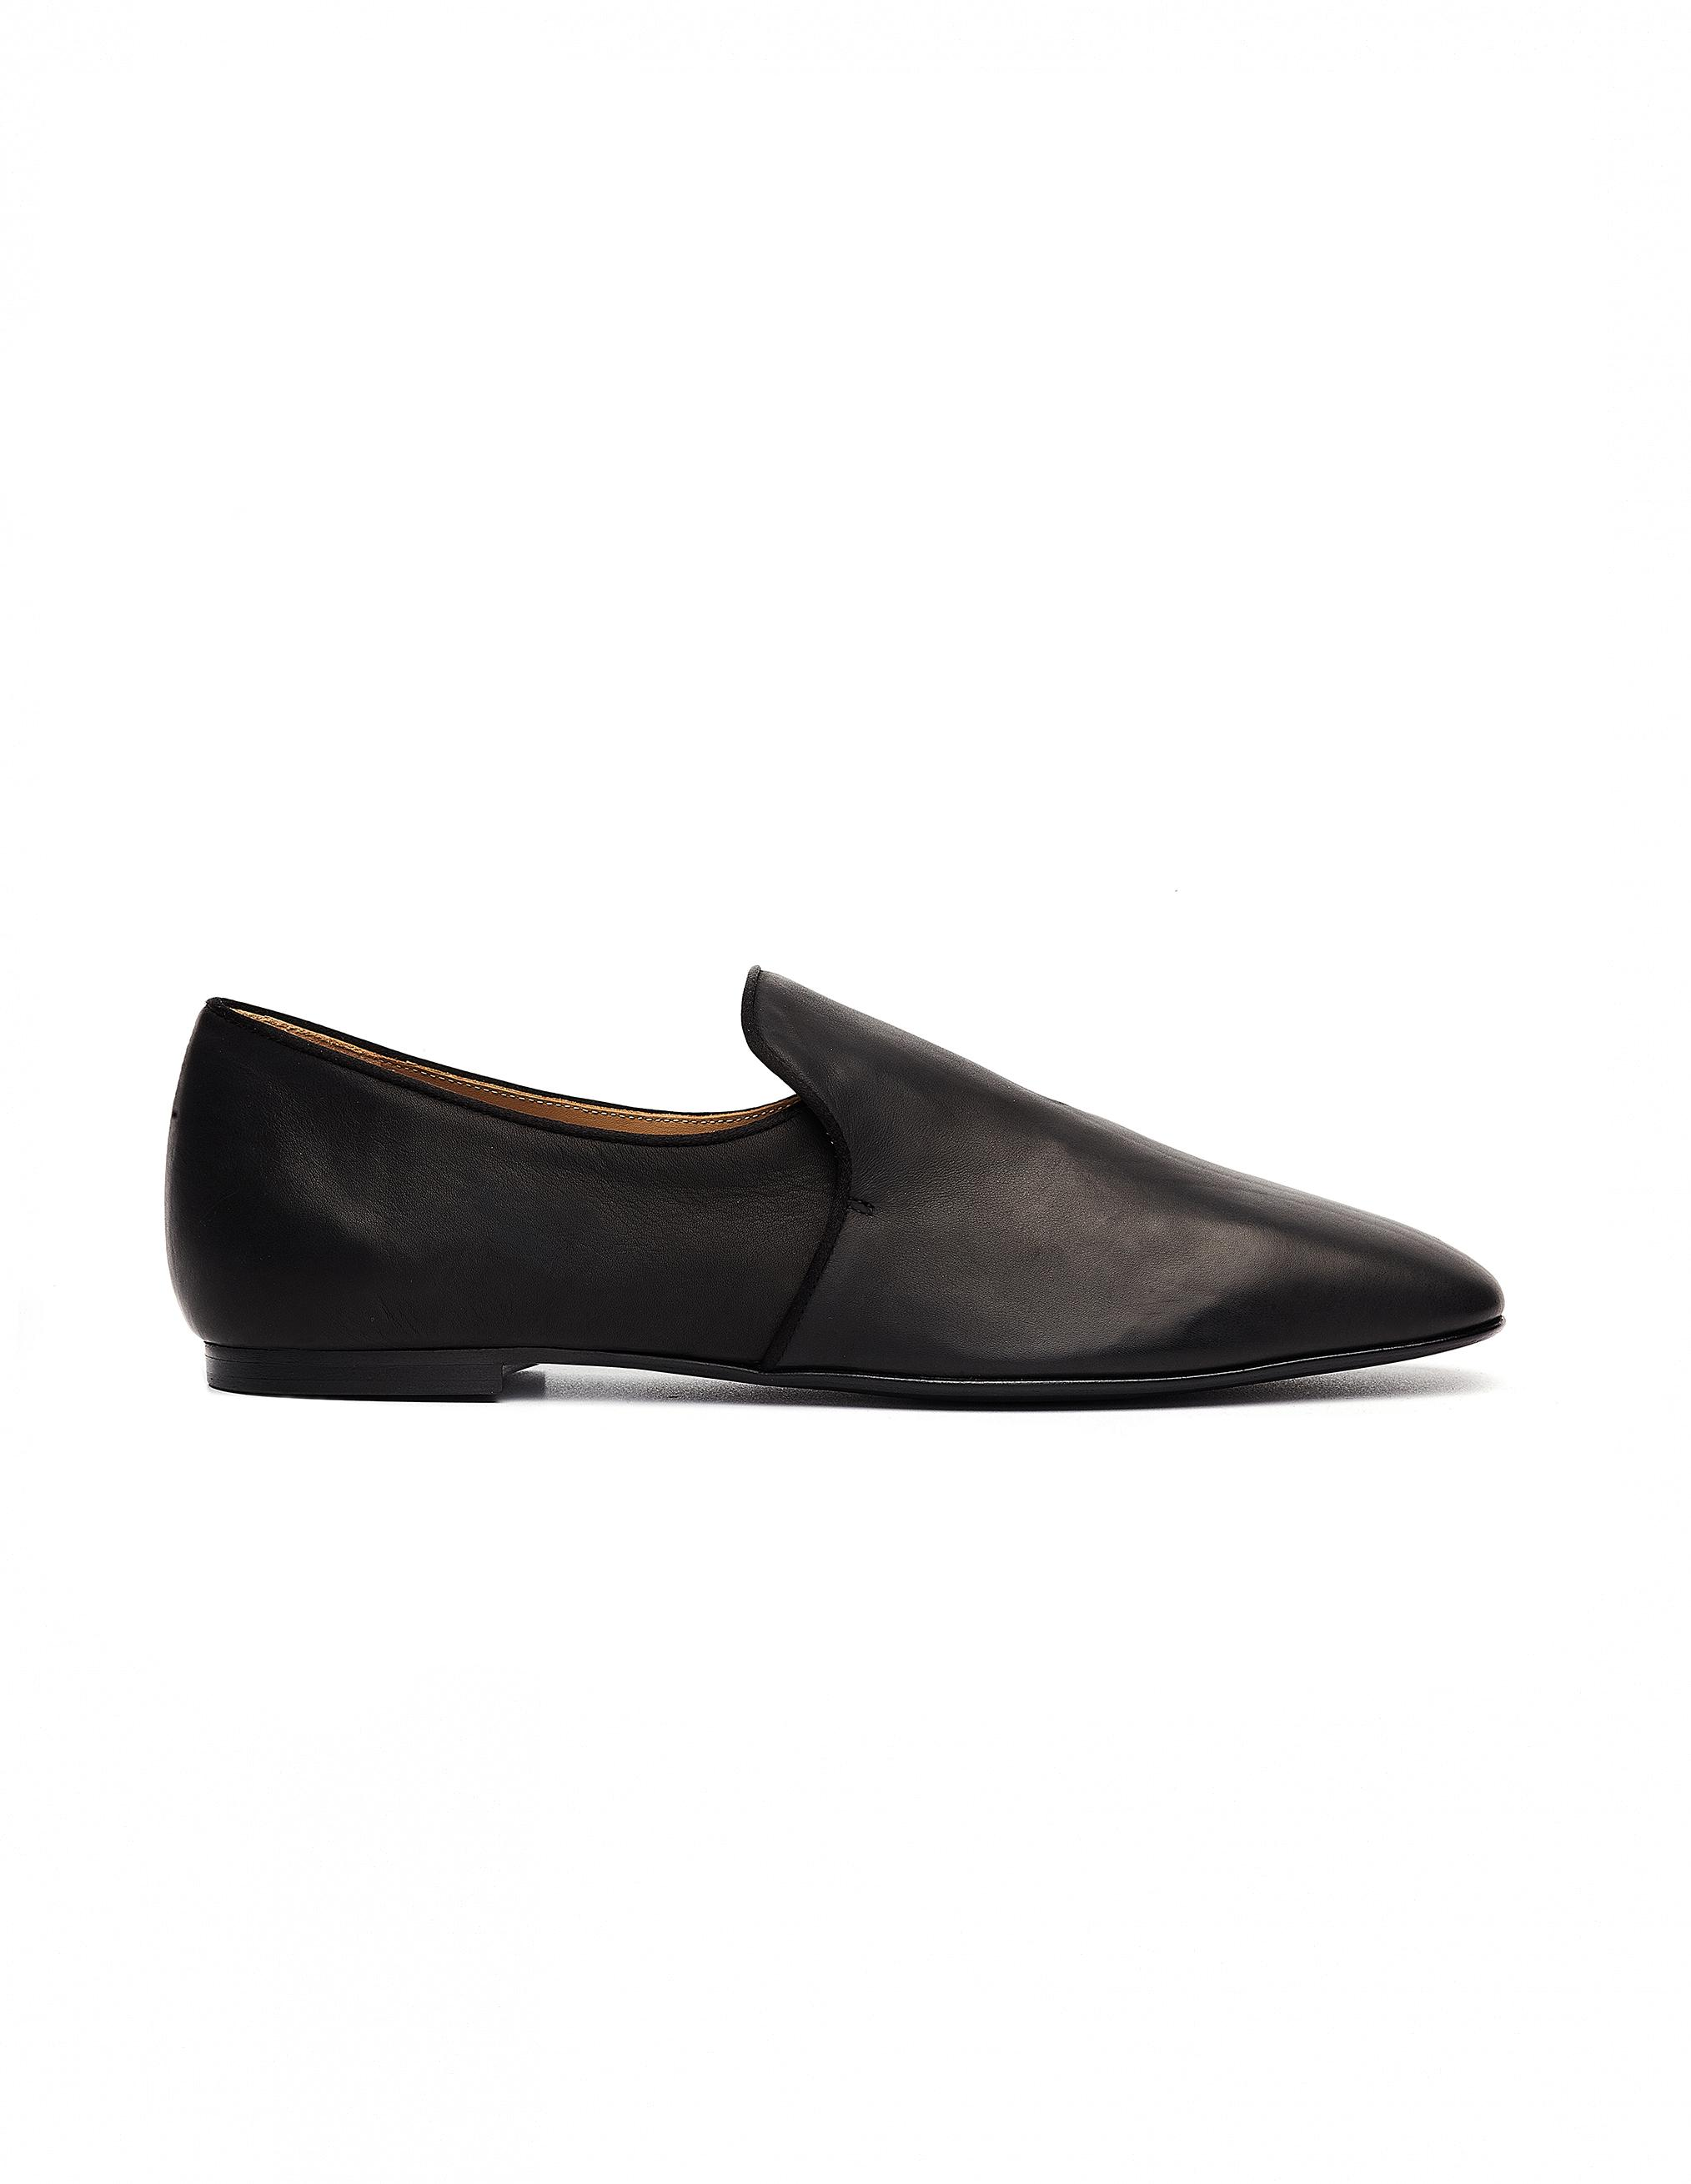 7779d722db1 The Row Alys Leather Loafers in Black - Lyst